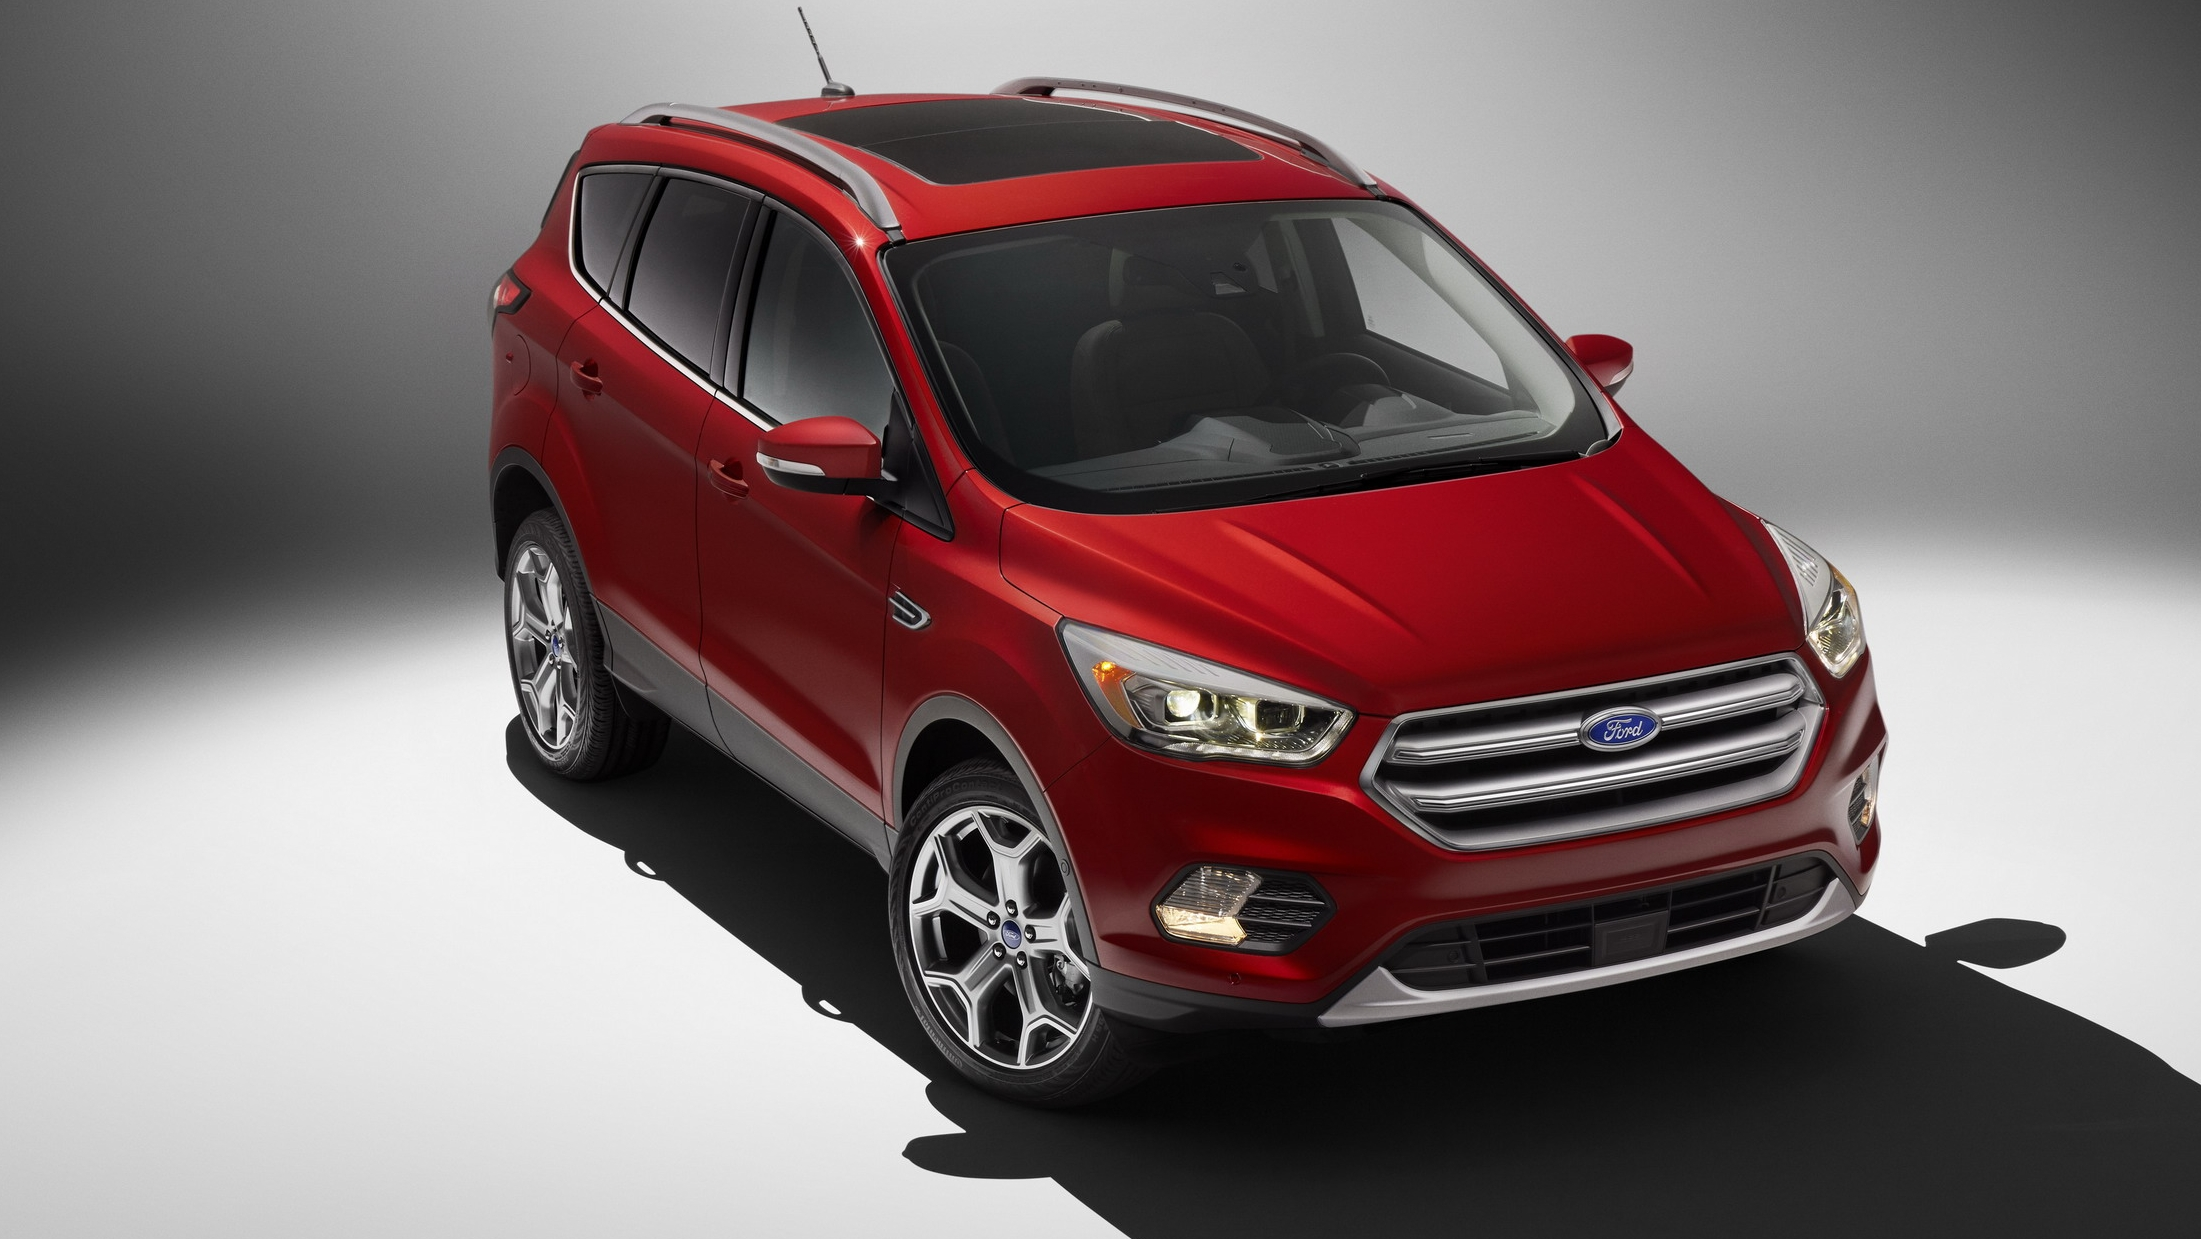 The long anticipated next generation ford escape has been official unveiled at the 2015 la auto show totally revised with new looks two new powertrains